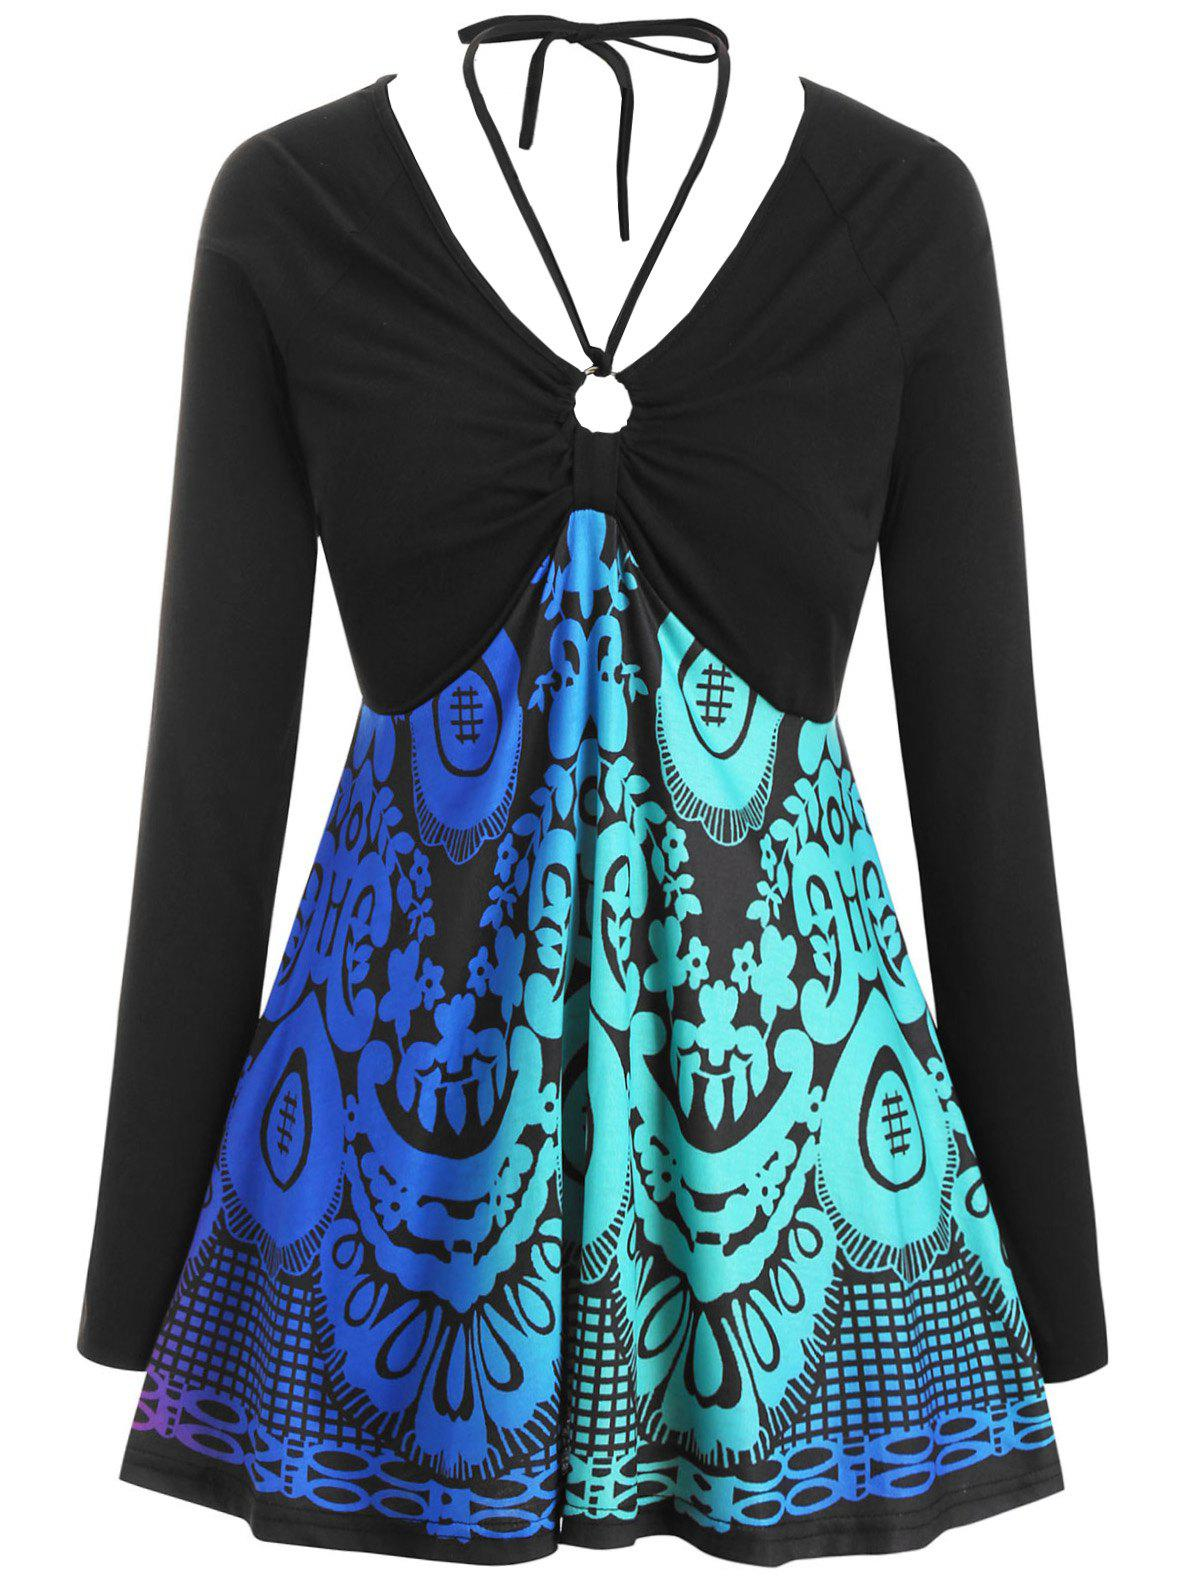 Buy Long Sleeve Printed O Ring Tie Collar Plus Size Top